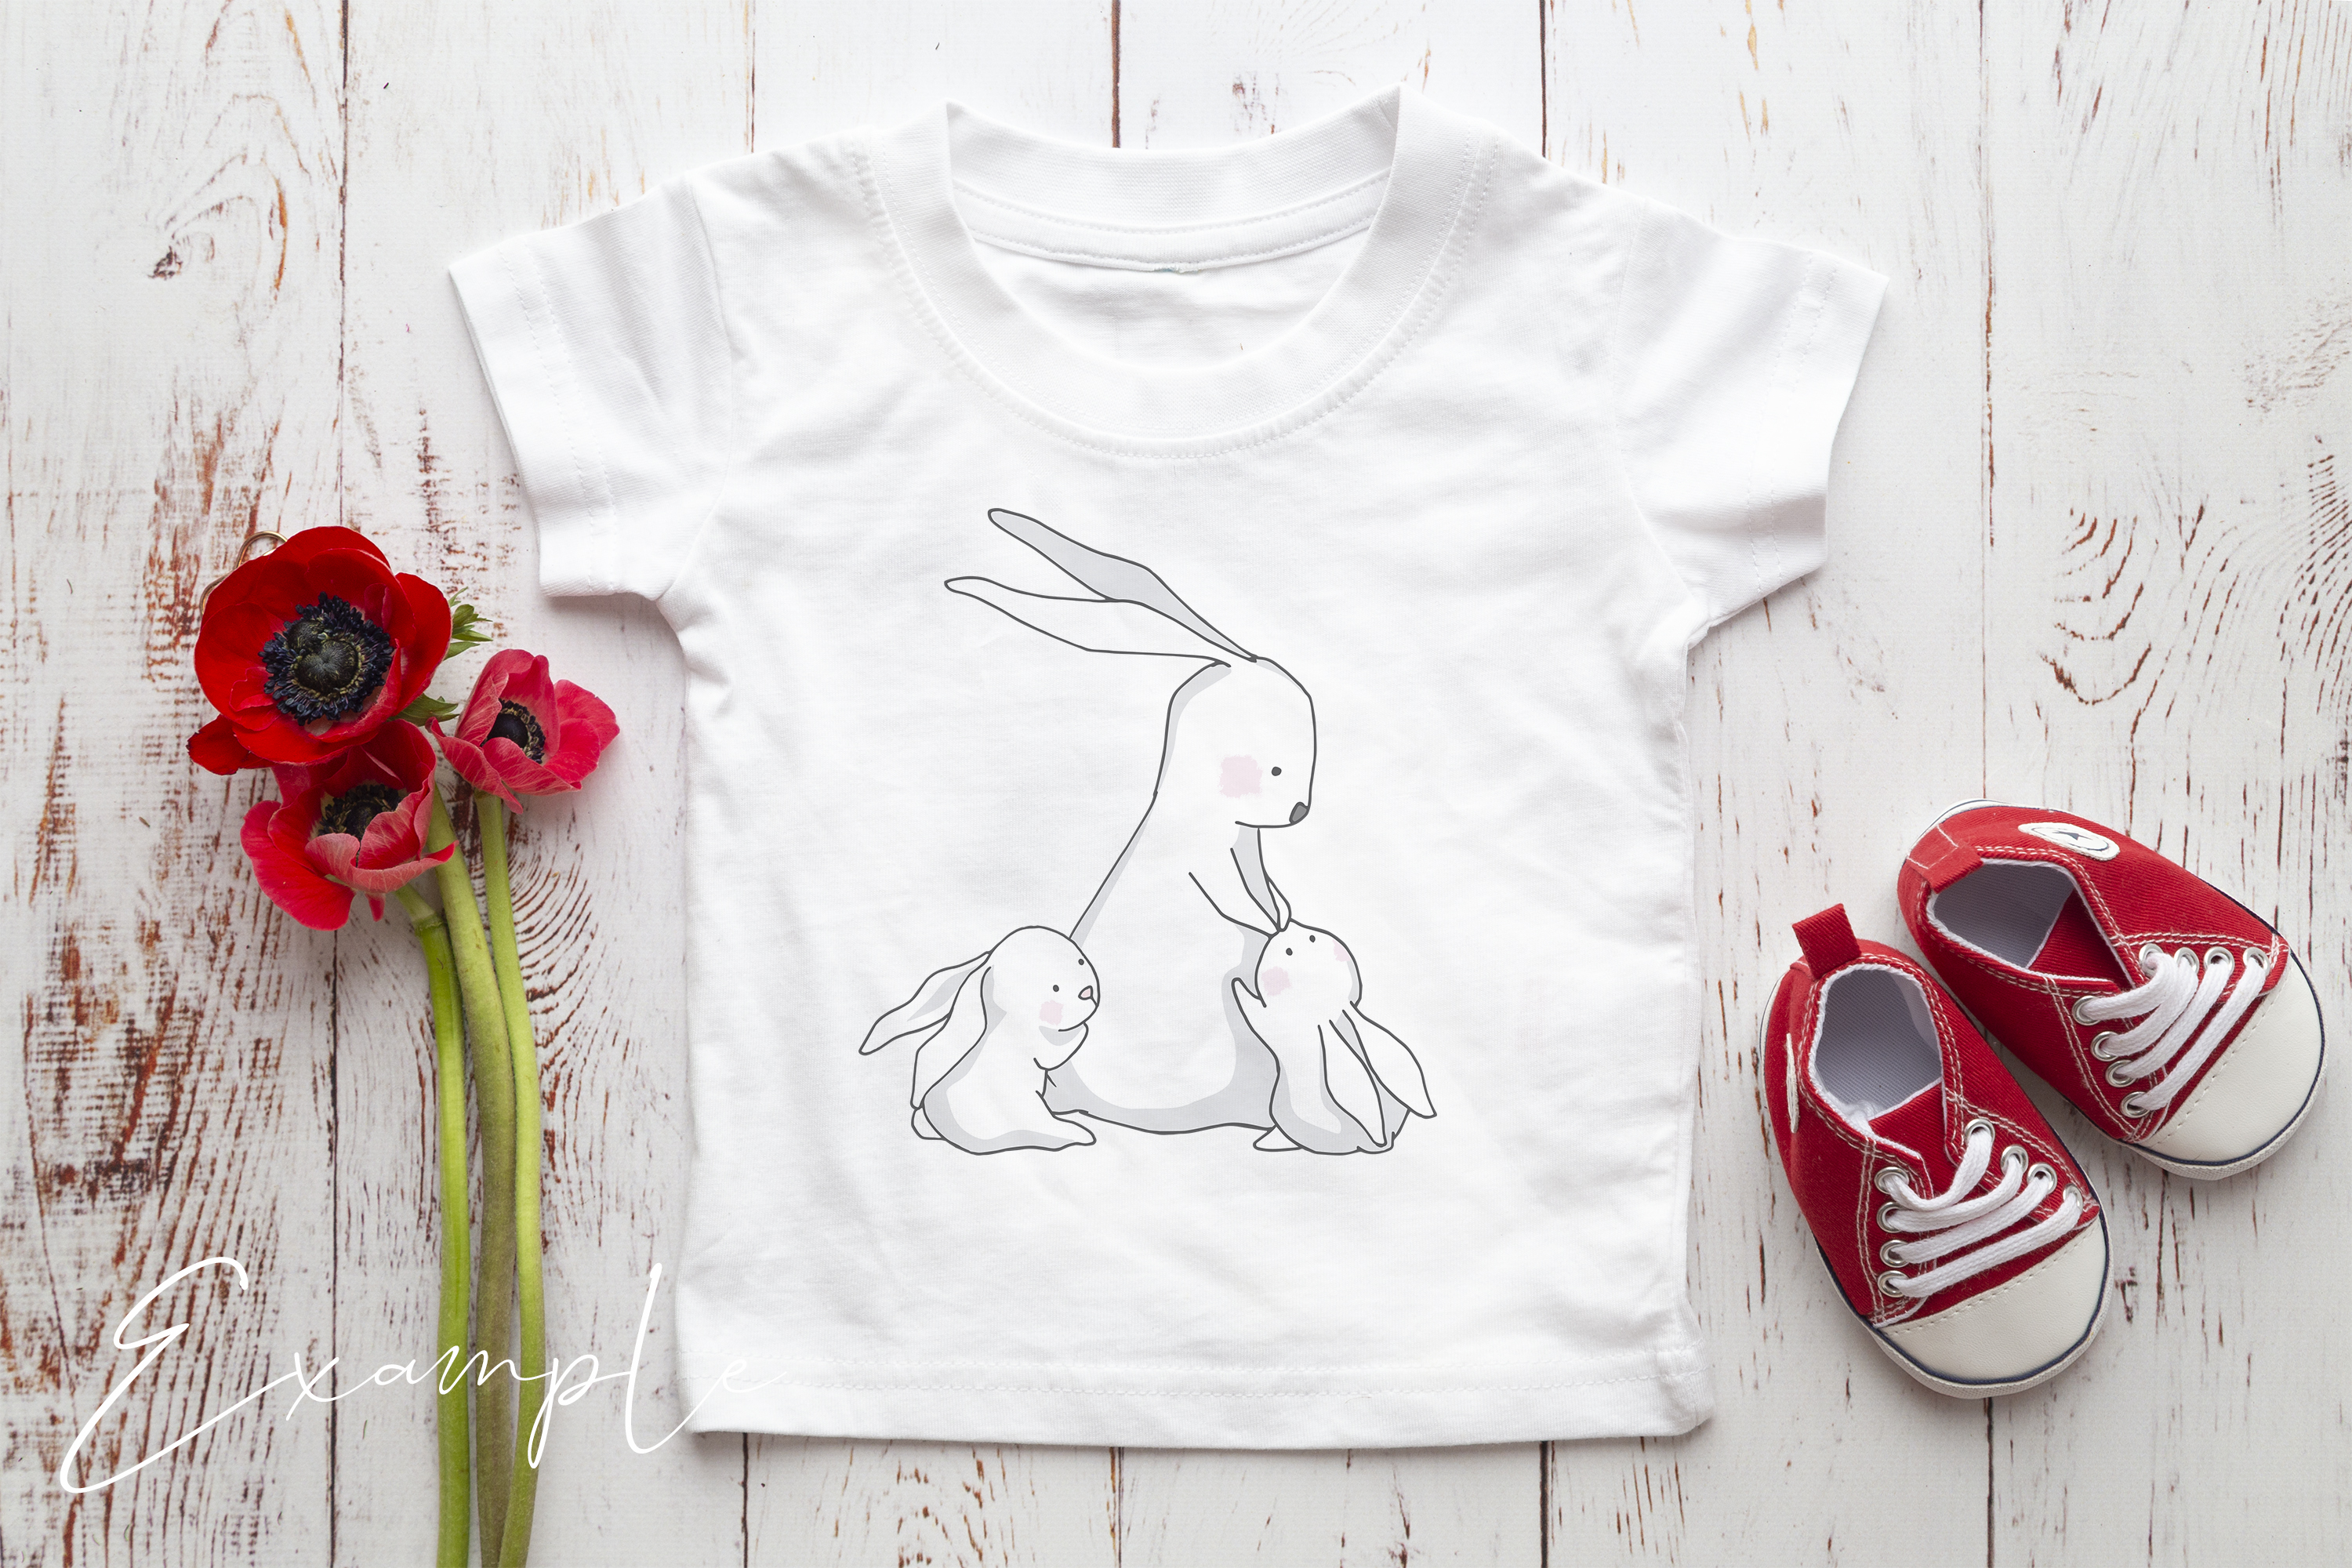 Onesie, Infant T-Shirt Mockup example image 3